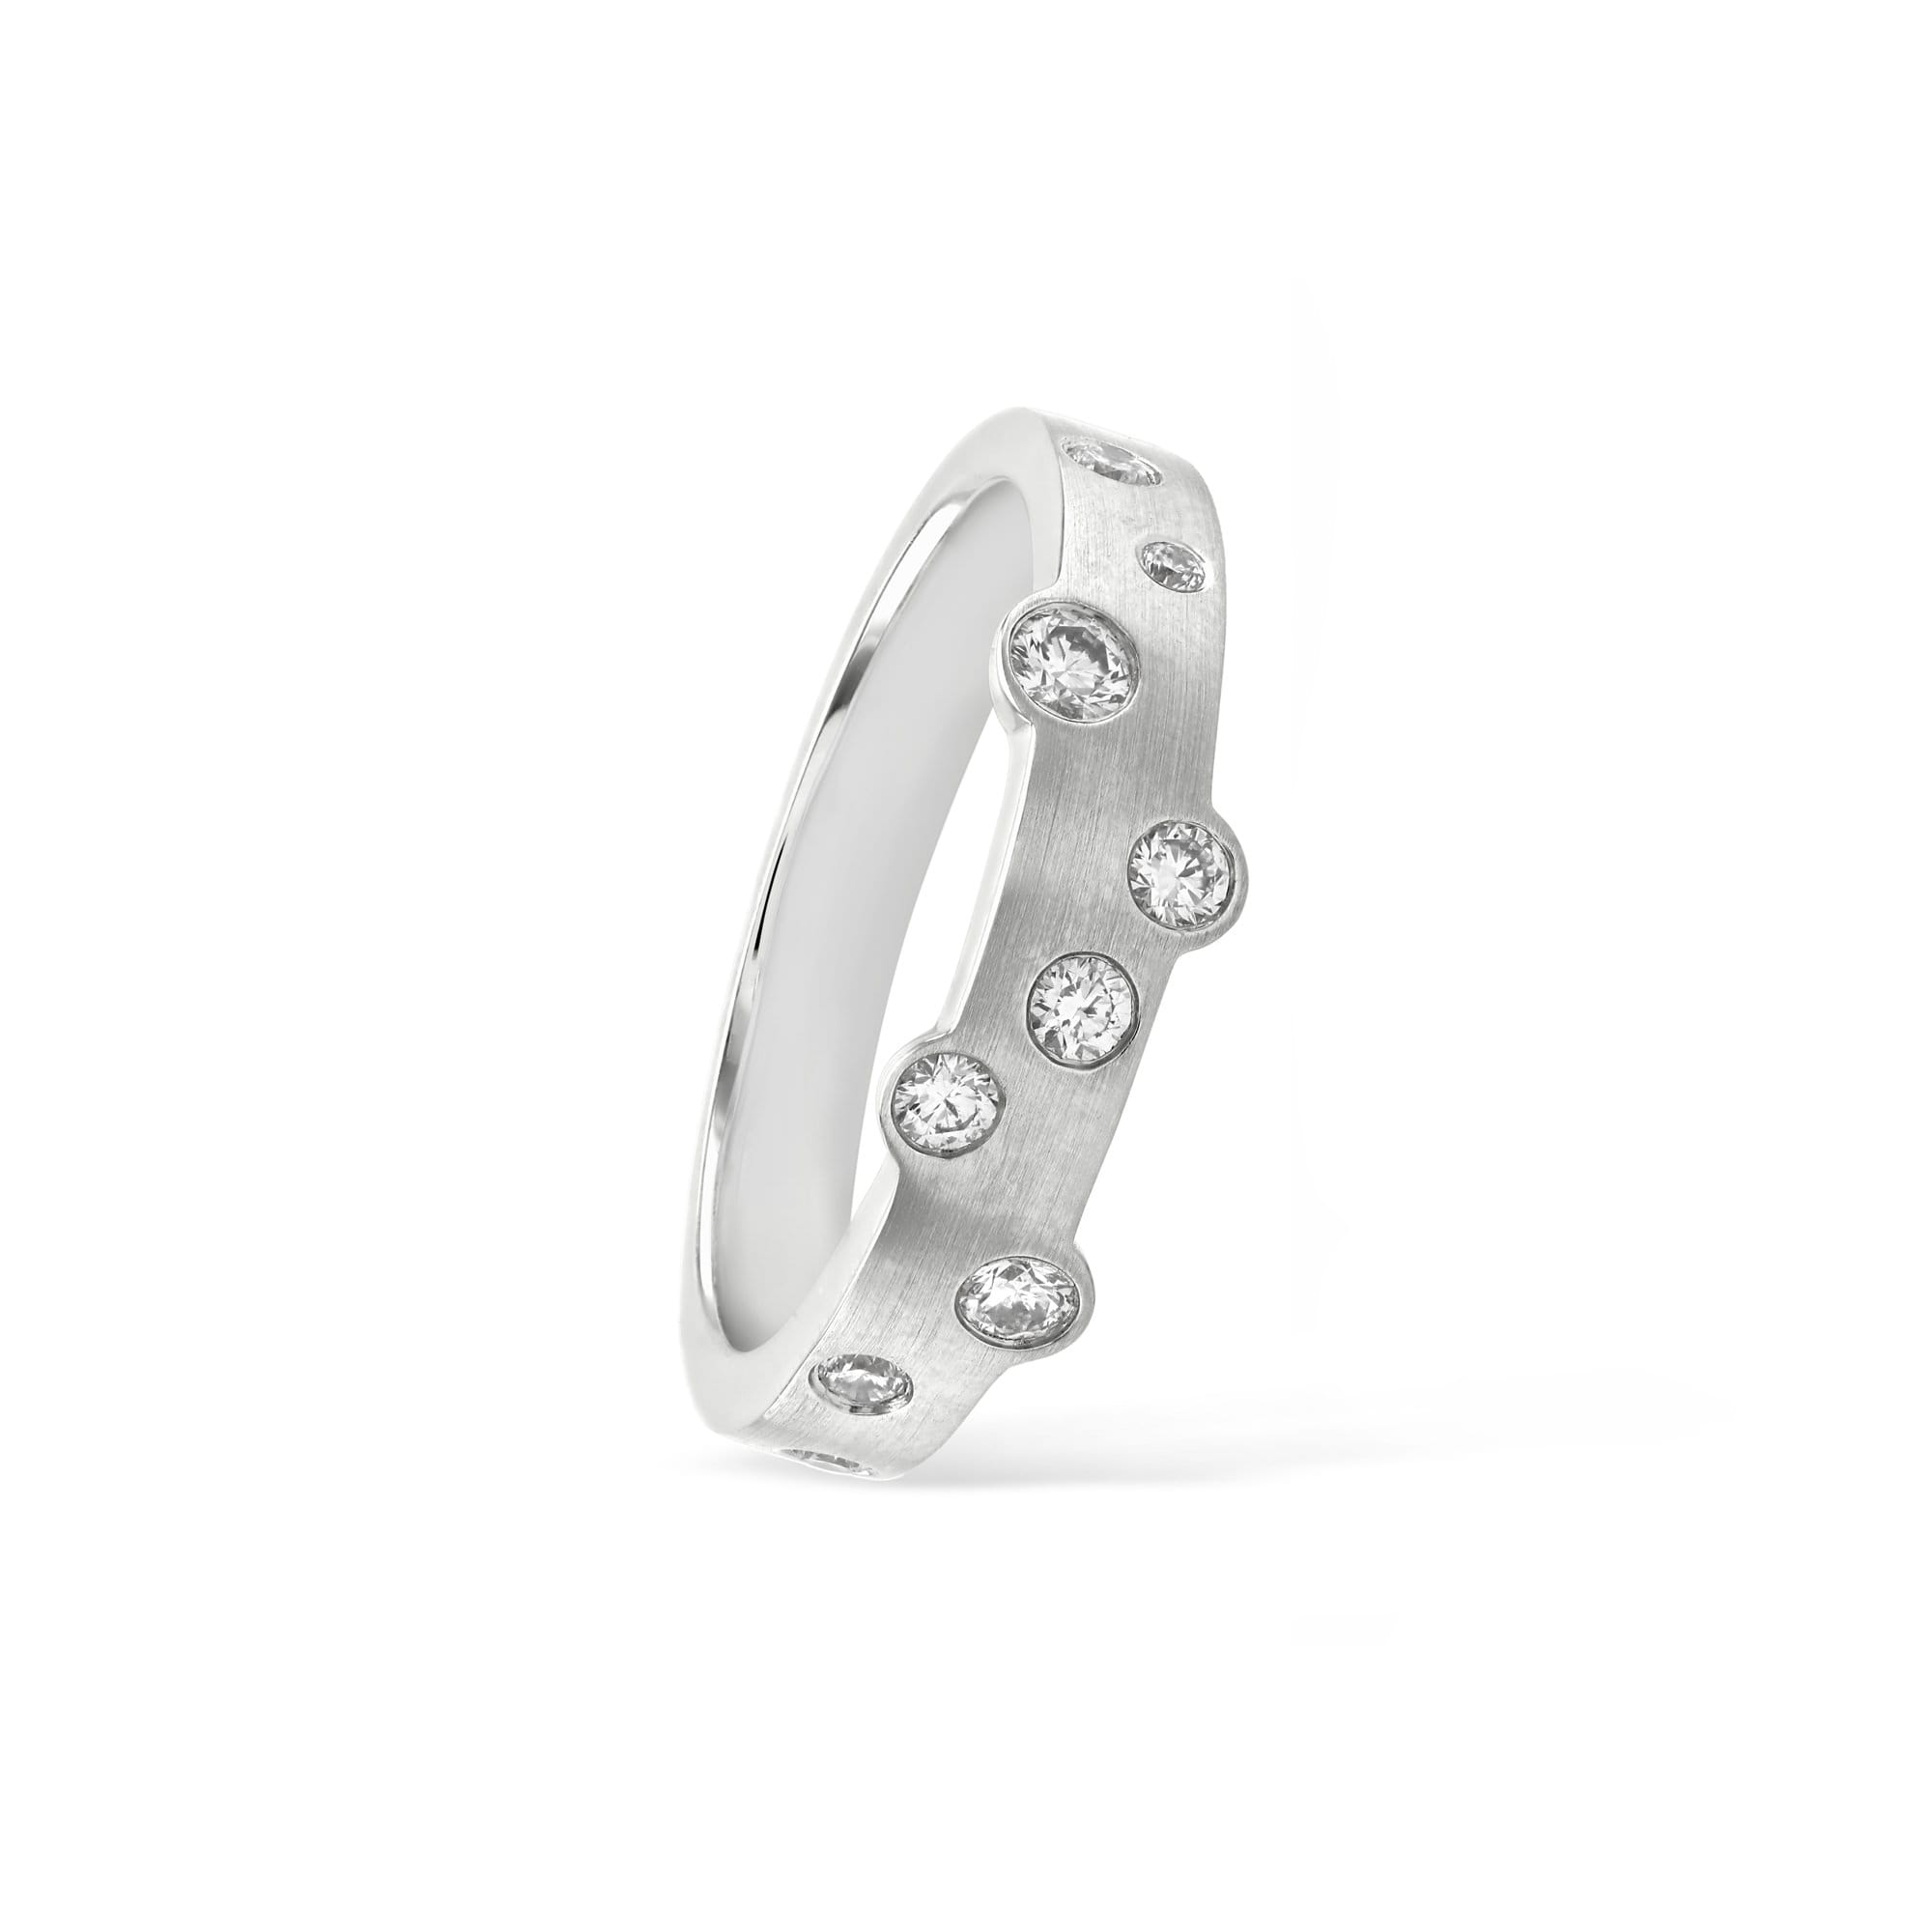 Cloud Nine White Gold Slim Diamond Ring